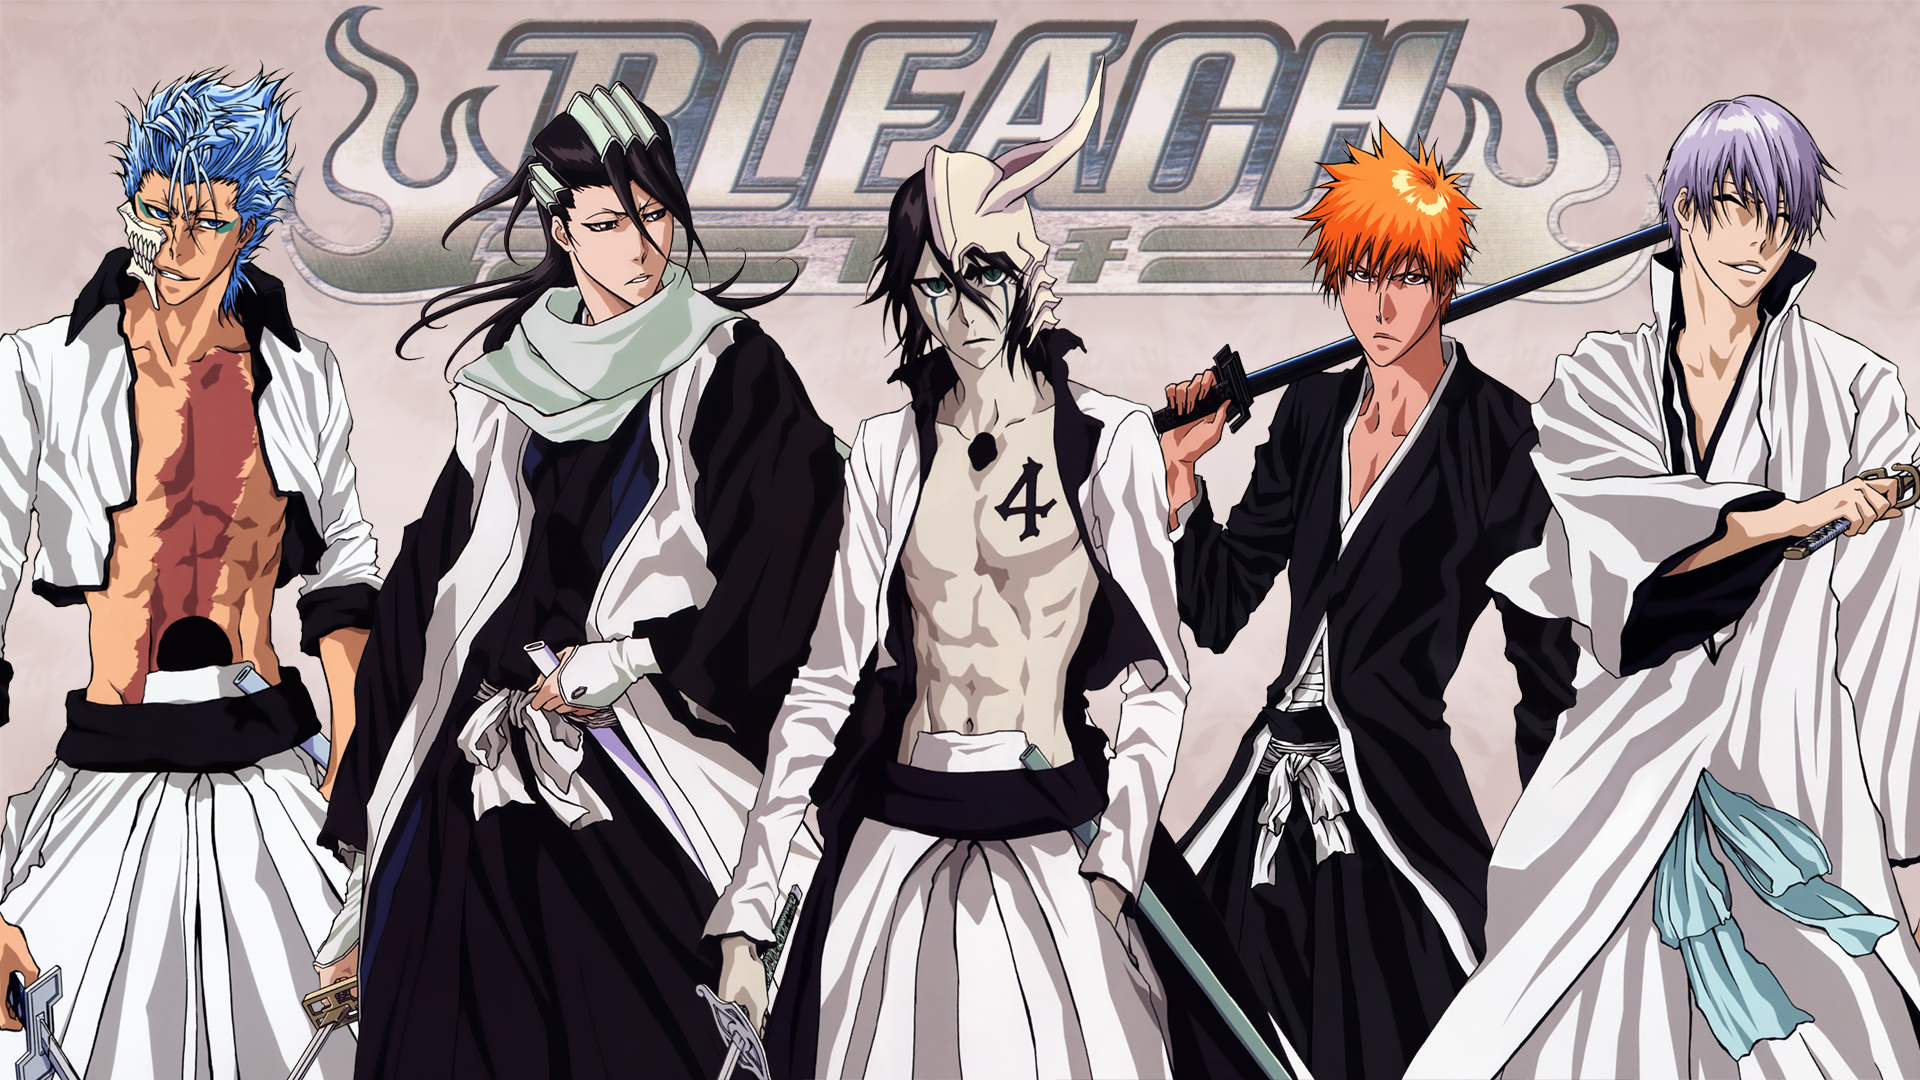 bleach, hd wallpaper - zerochan anime image board